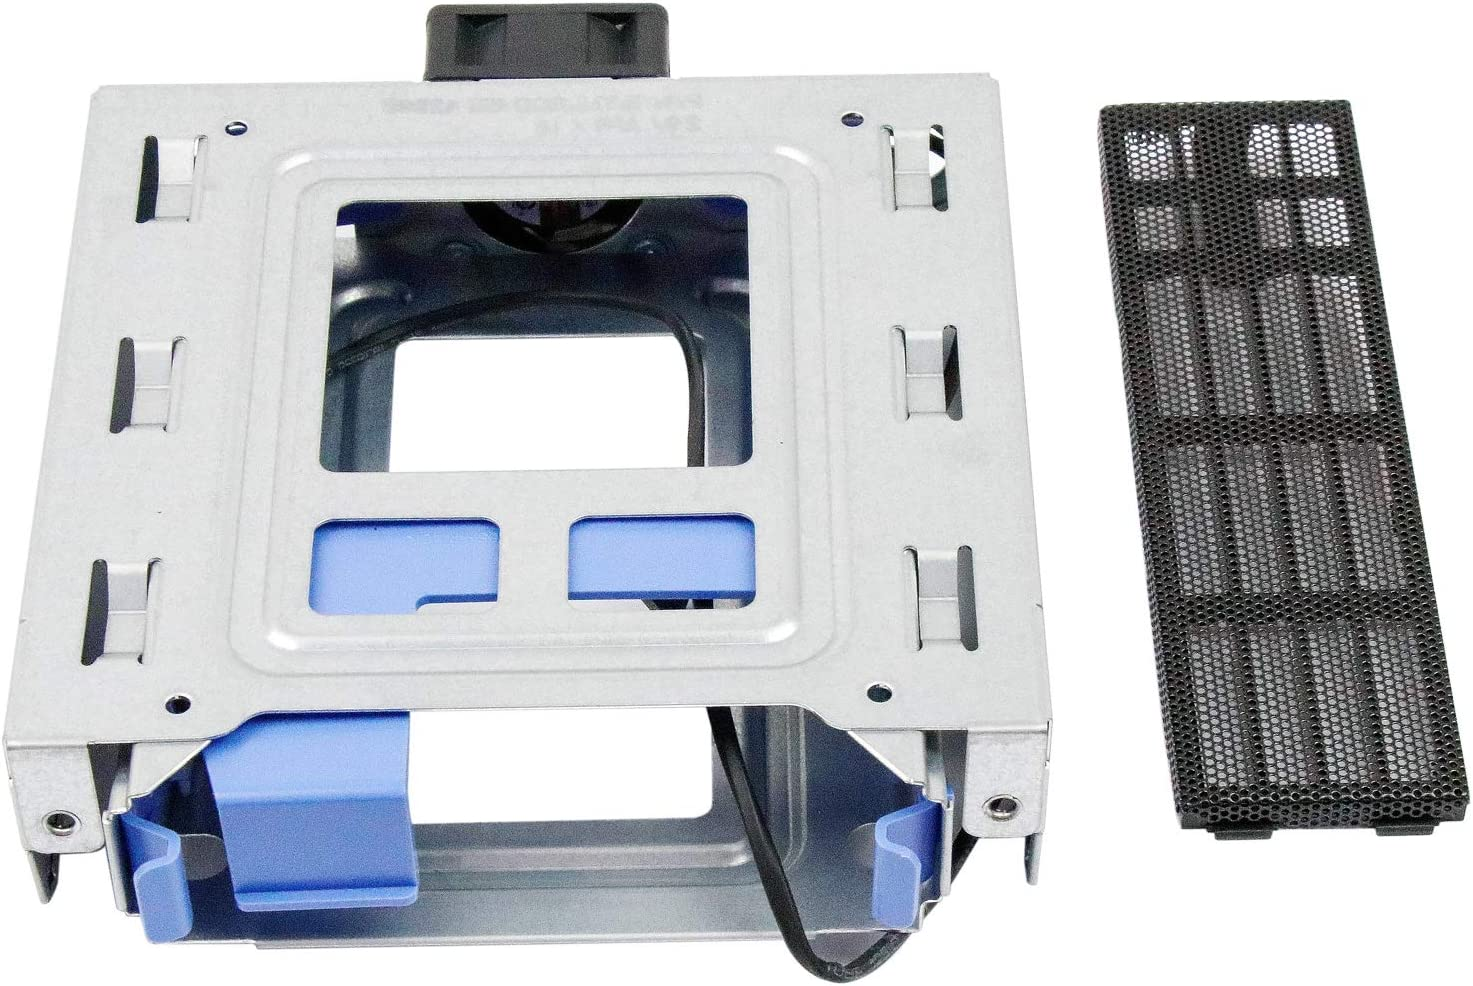 """New 3.5"""" HDD Hard Drive Cage Compatible with Dell Precision T3600 T3610 T5600 T5610 T5810 T5820 T7810 T7820 Tower 0WM1YT WM1YT"""